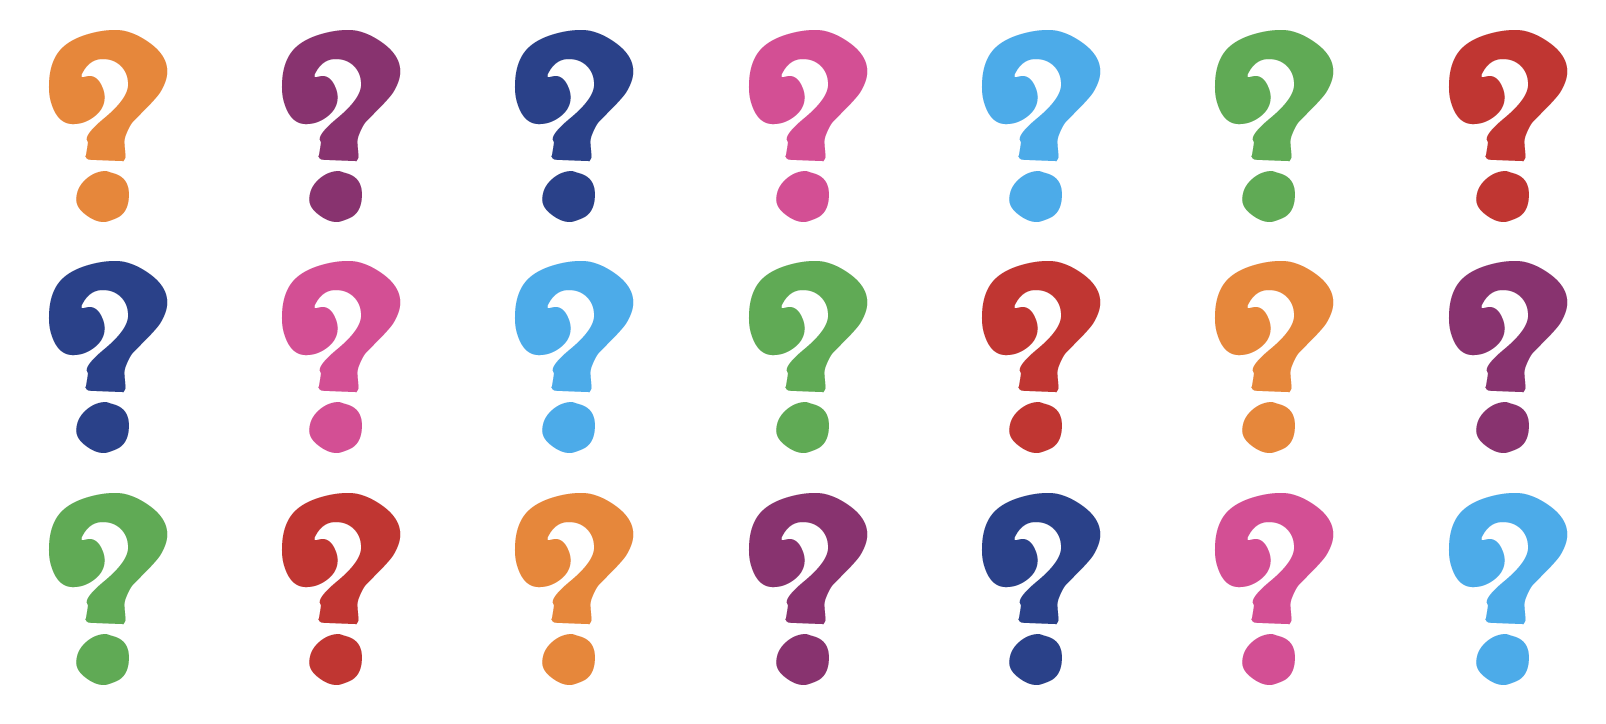 Question marks explained | Primary school punctuation: question ...